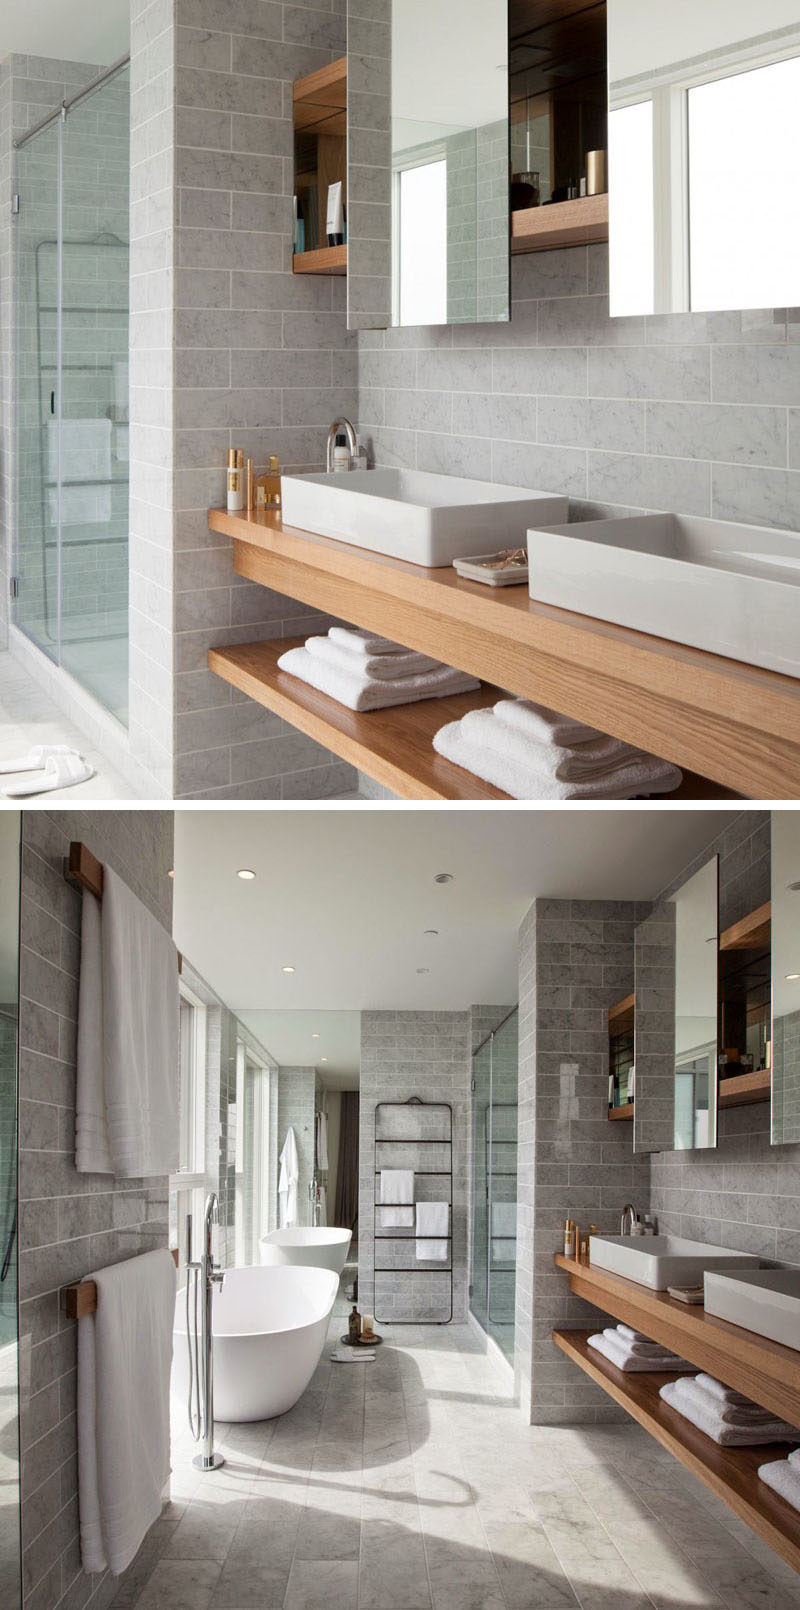 Examples Of Bathroom Vanities That Have Open Shelving - Bathroom vanities with shelves